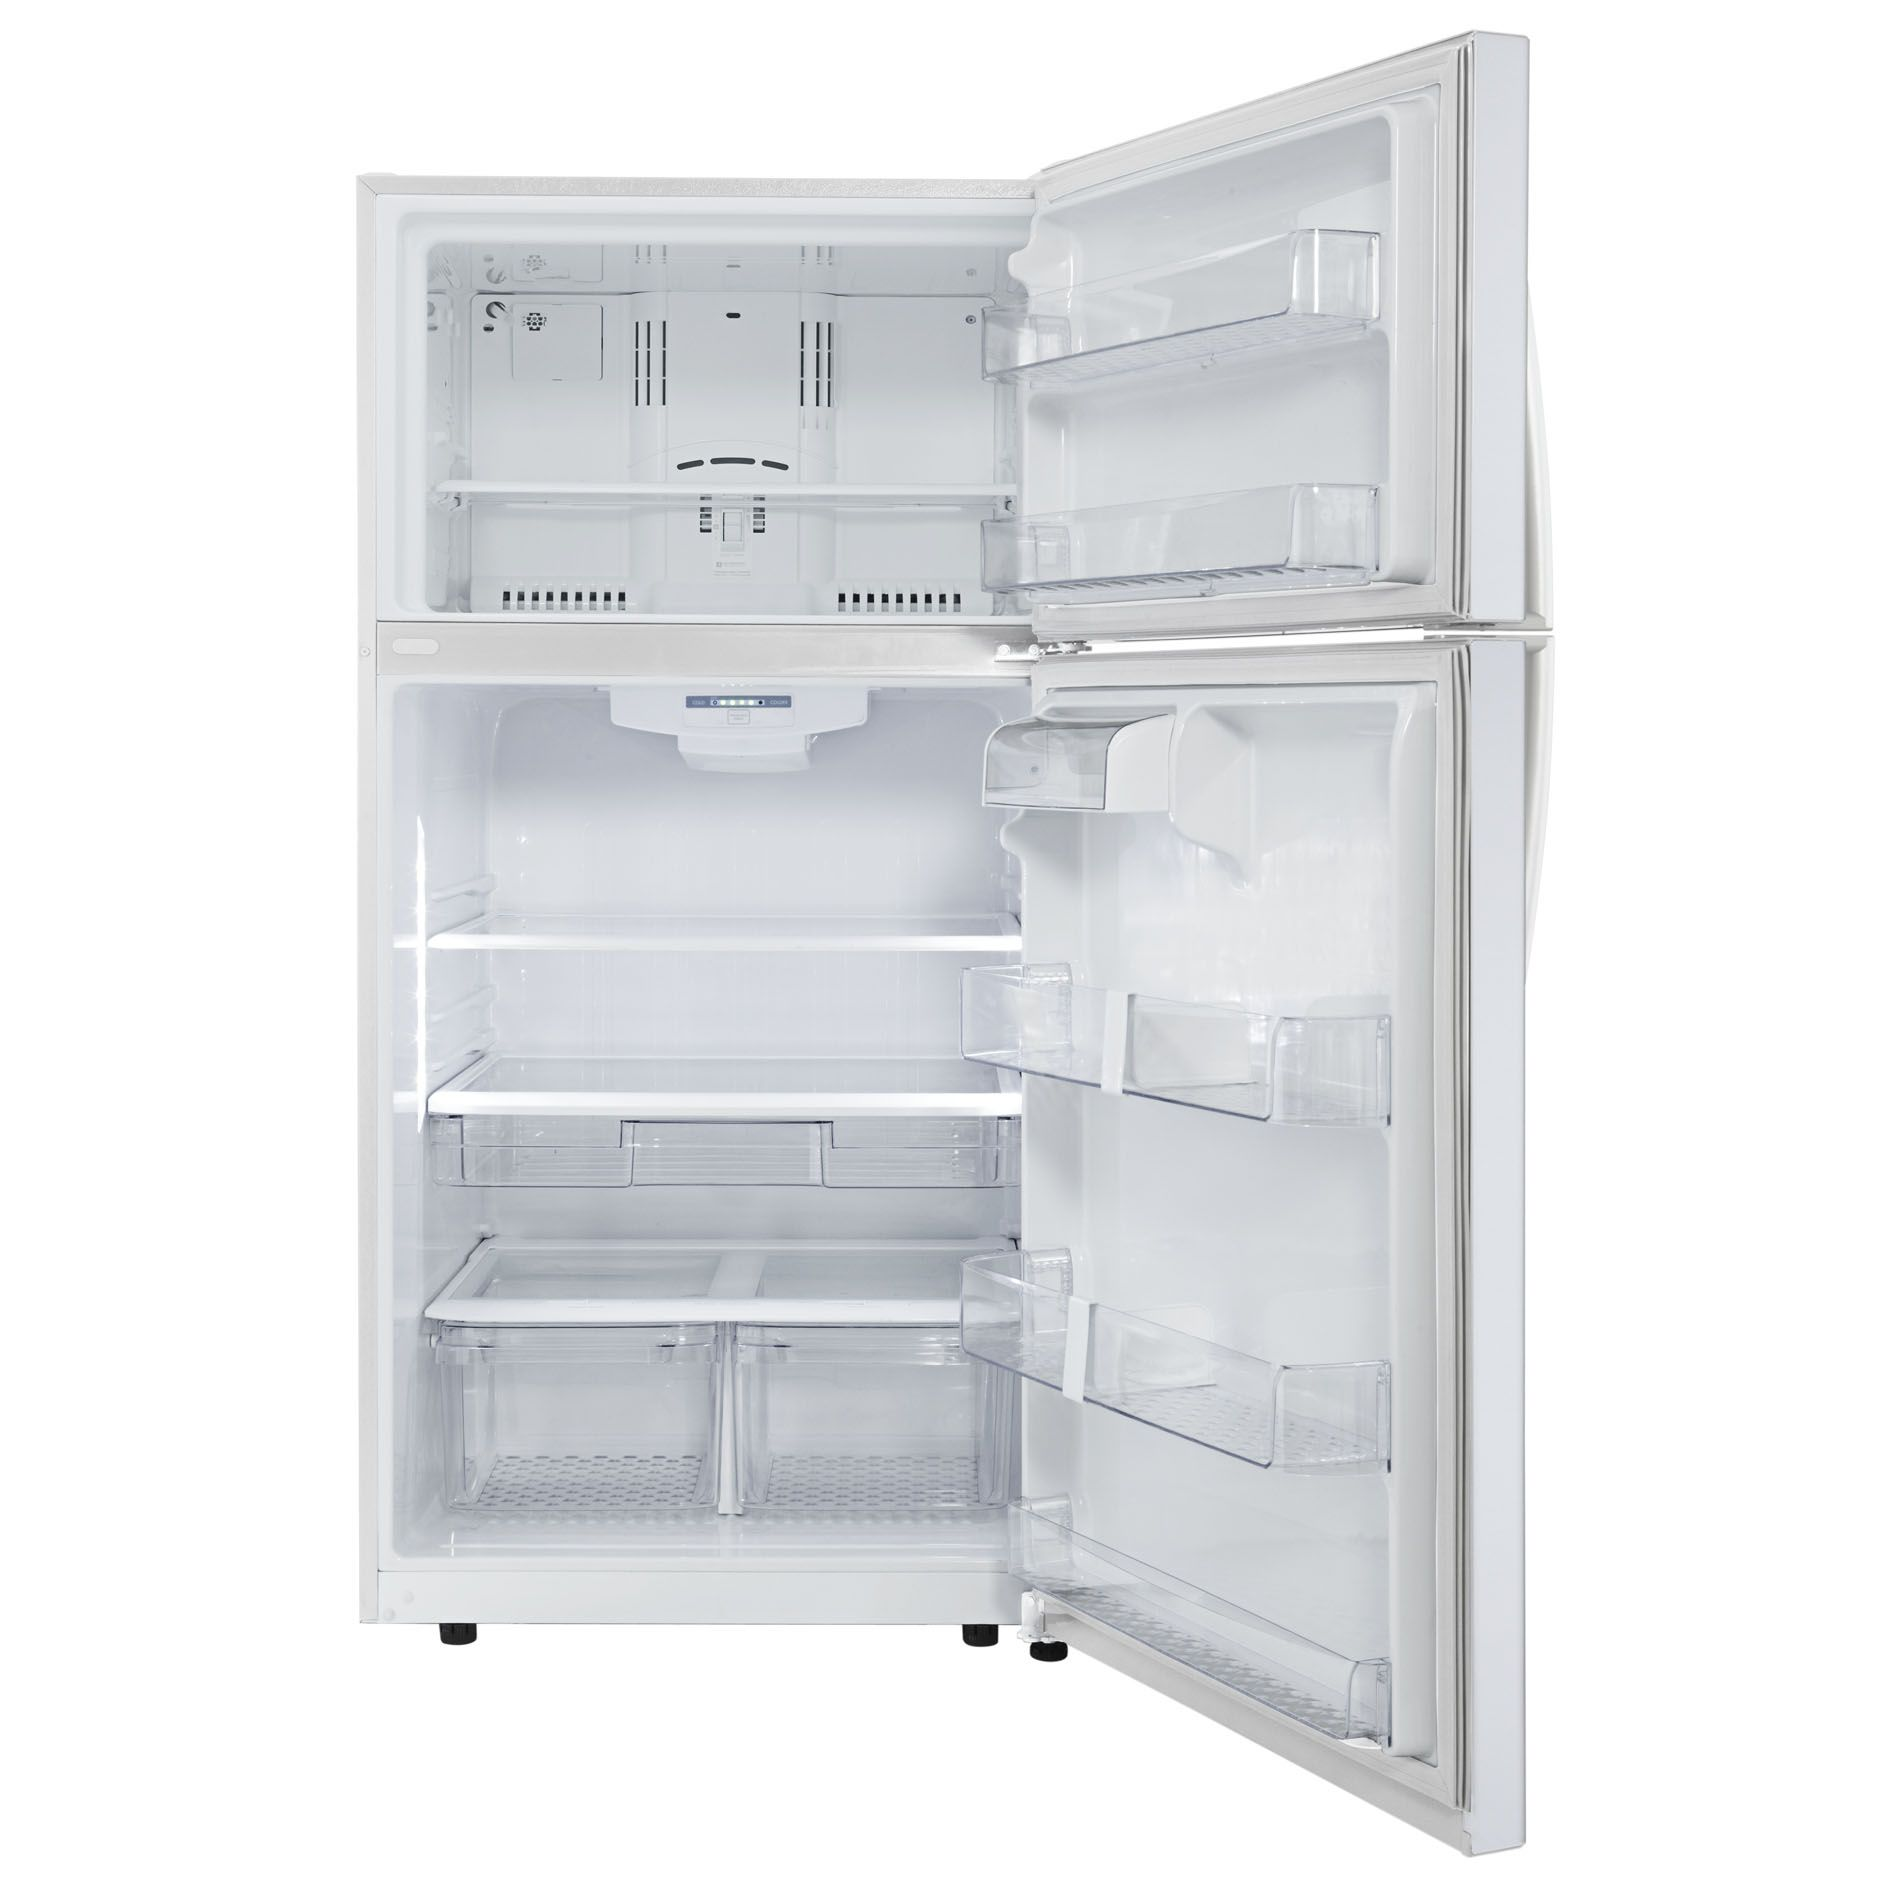 Kenmore 68032 23.8 cu. ft. Top-Freezer Refrigerator - White